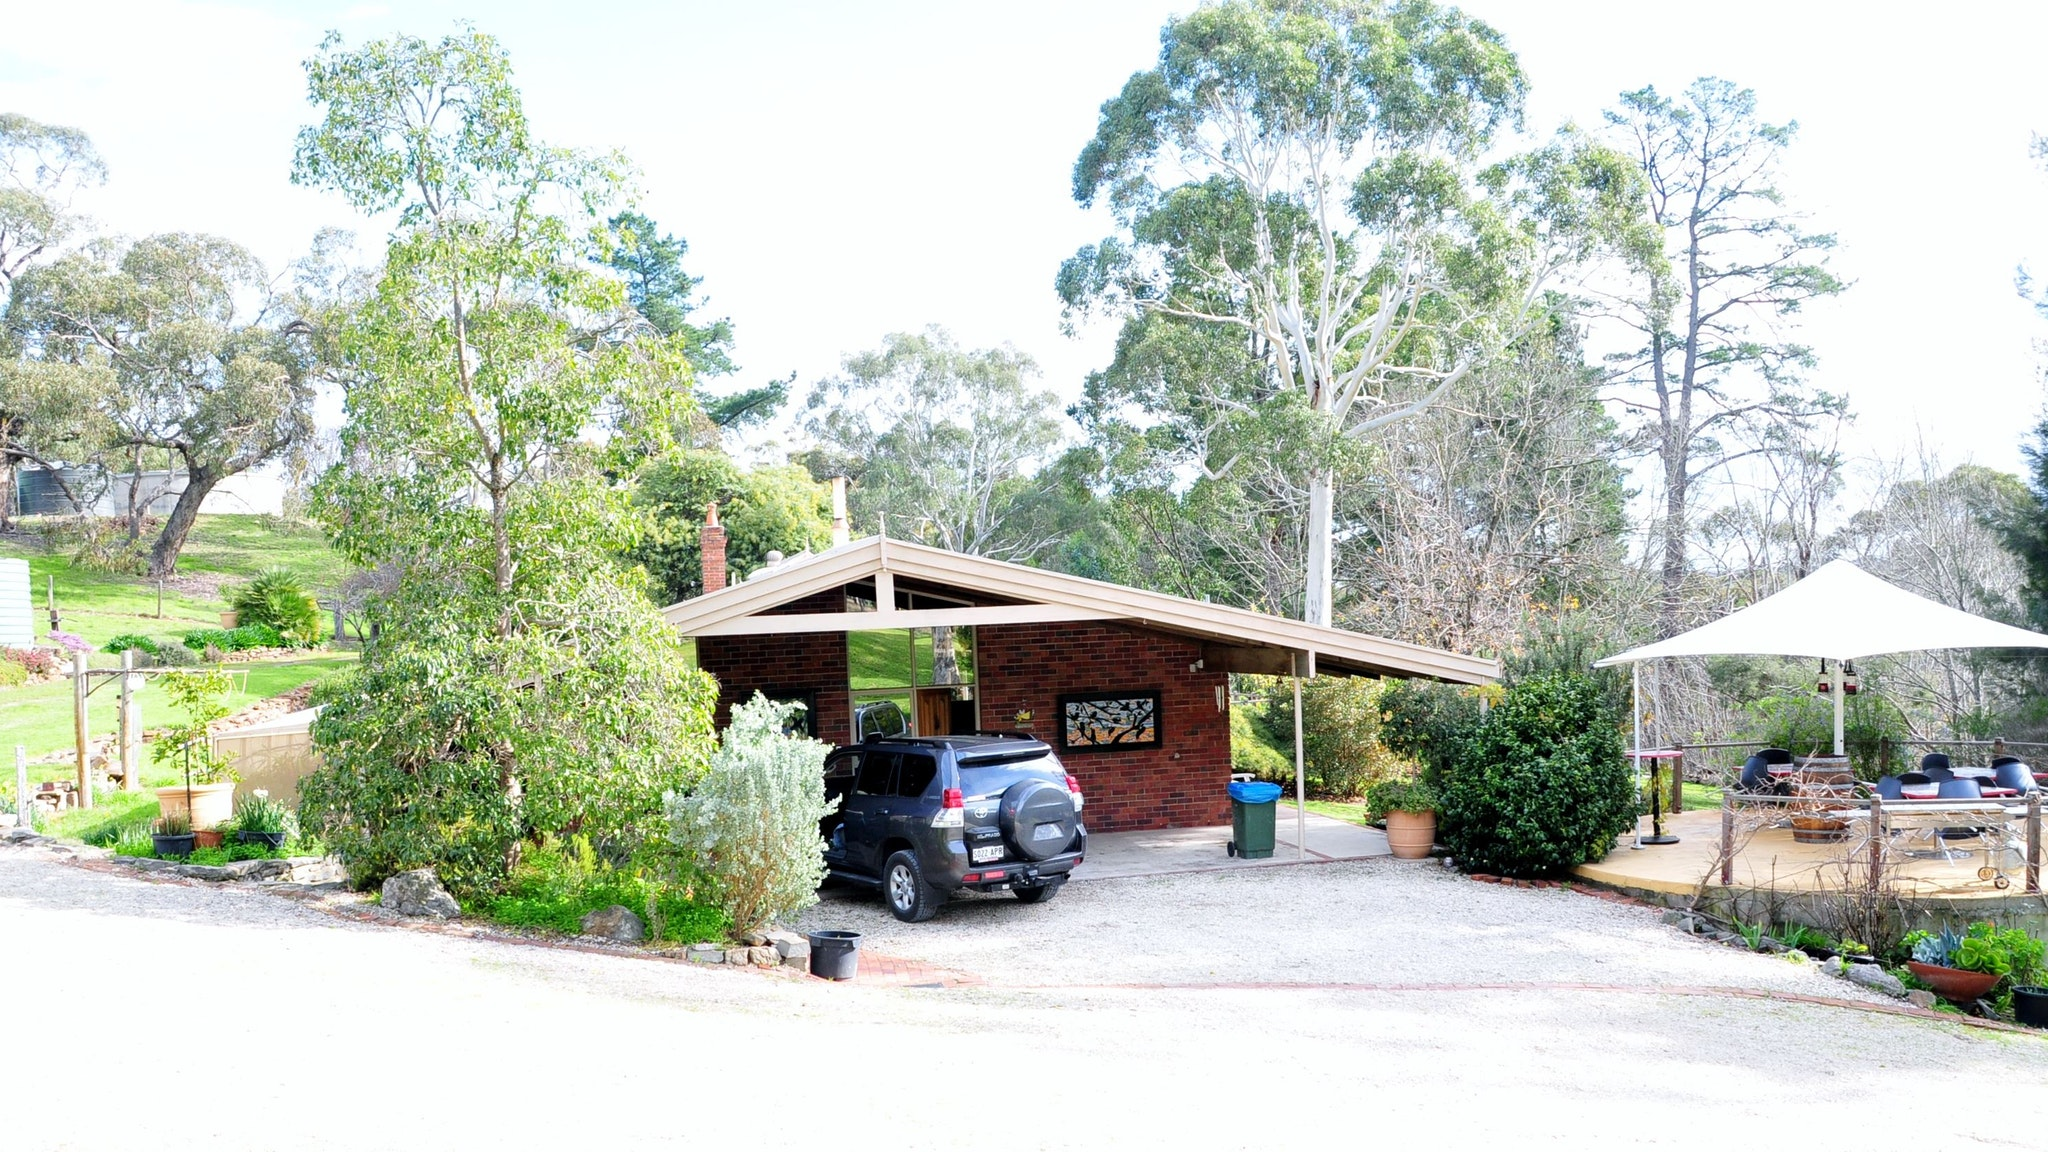 Barrenjoey Hideaway Logo and Images